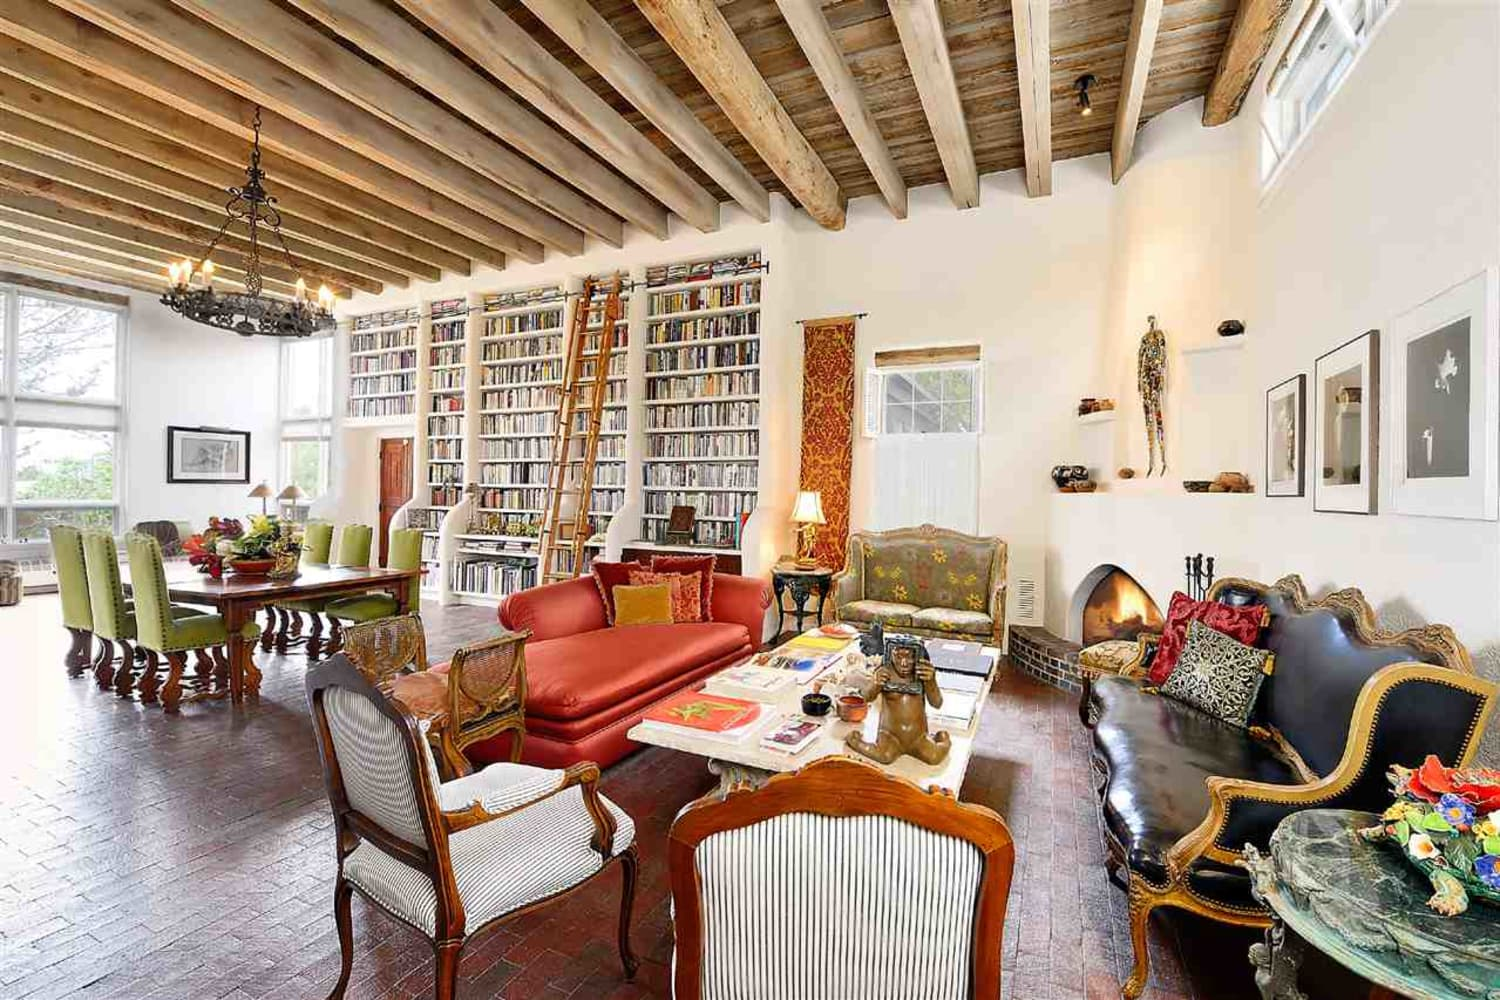 This Santa Fe Pueblo Dwelling for Sale Has the Loveliest In-Home Library